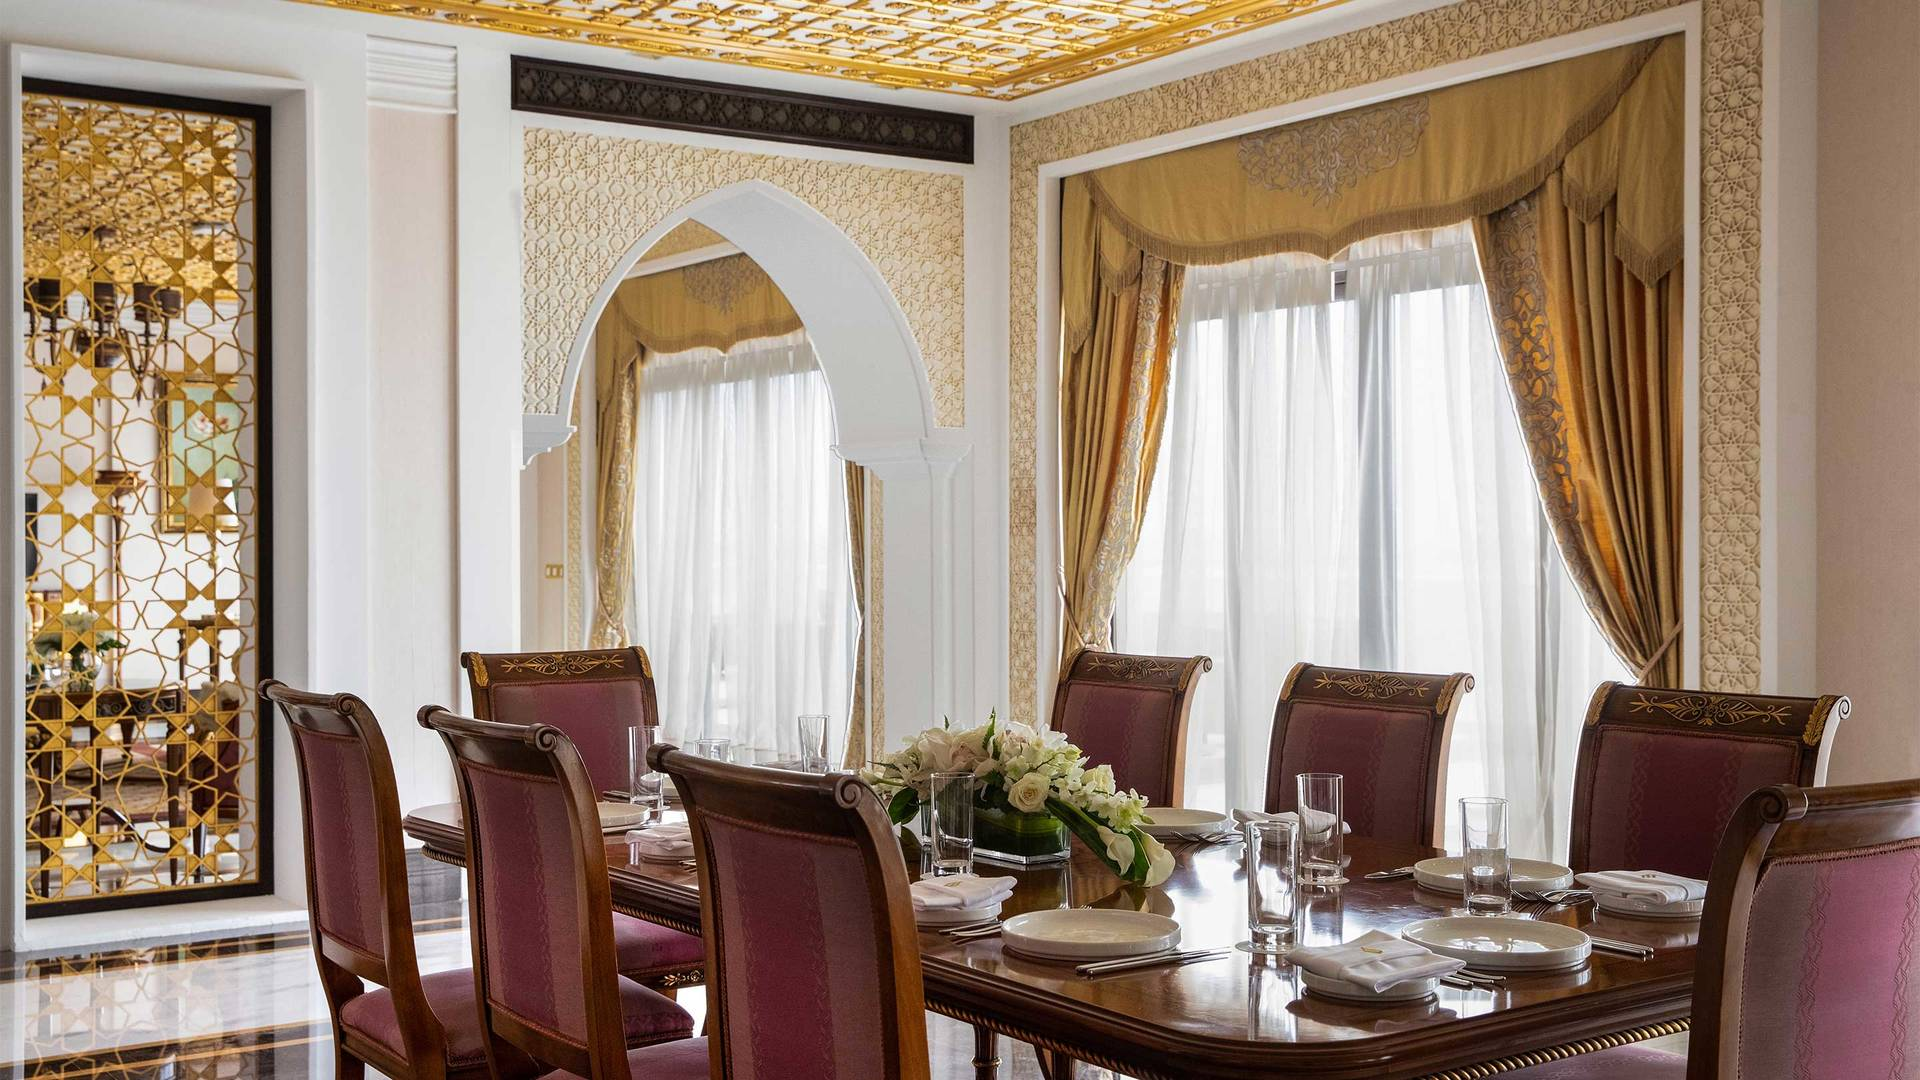 16-9_Jumeirah-Zabeel-Saray---Grand-Imperial-Suite---Dining-Area--Detailed-02